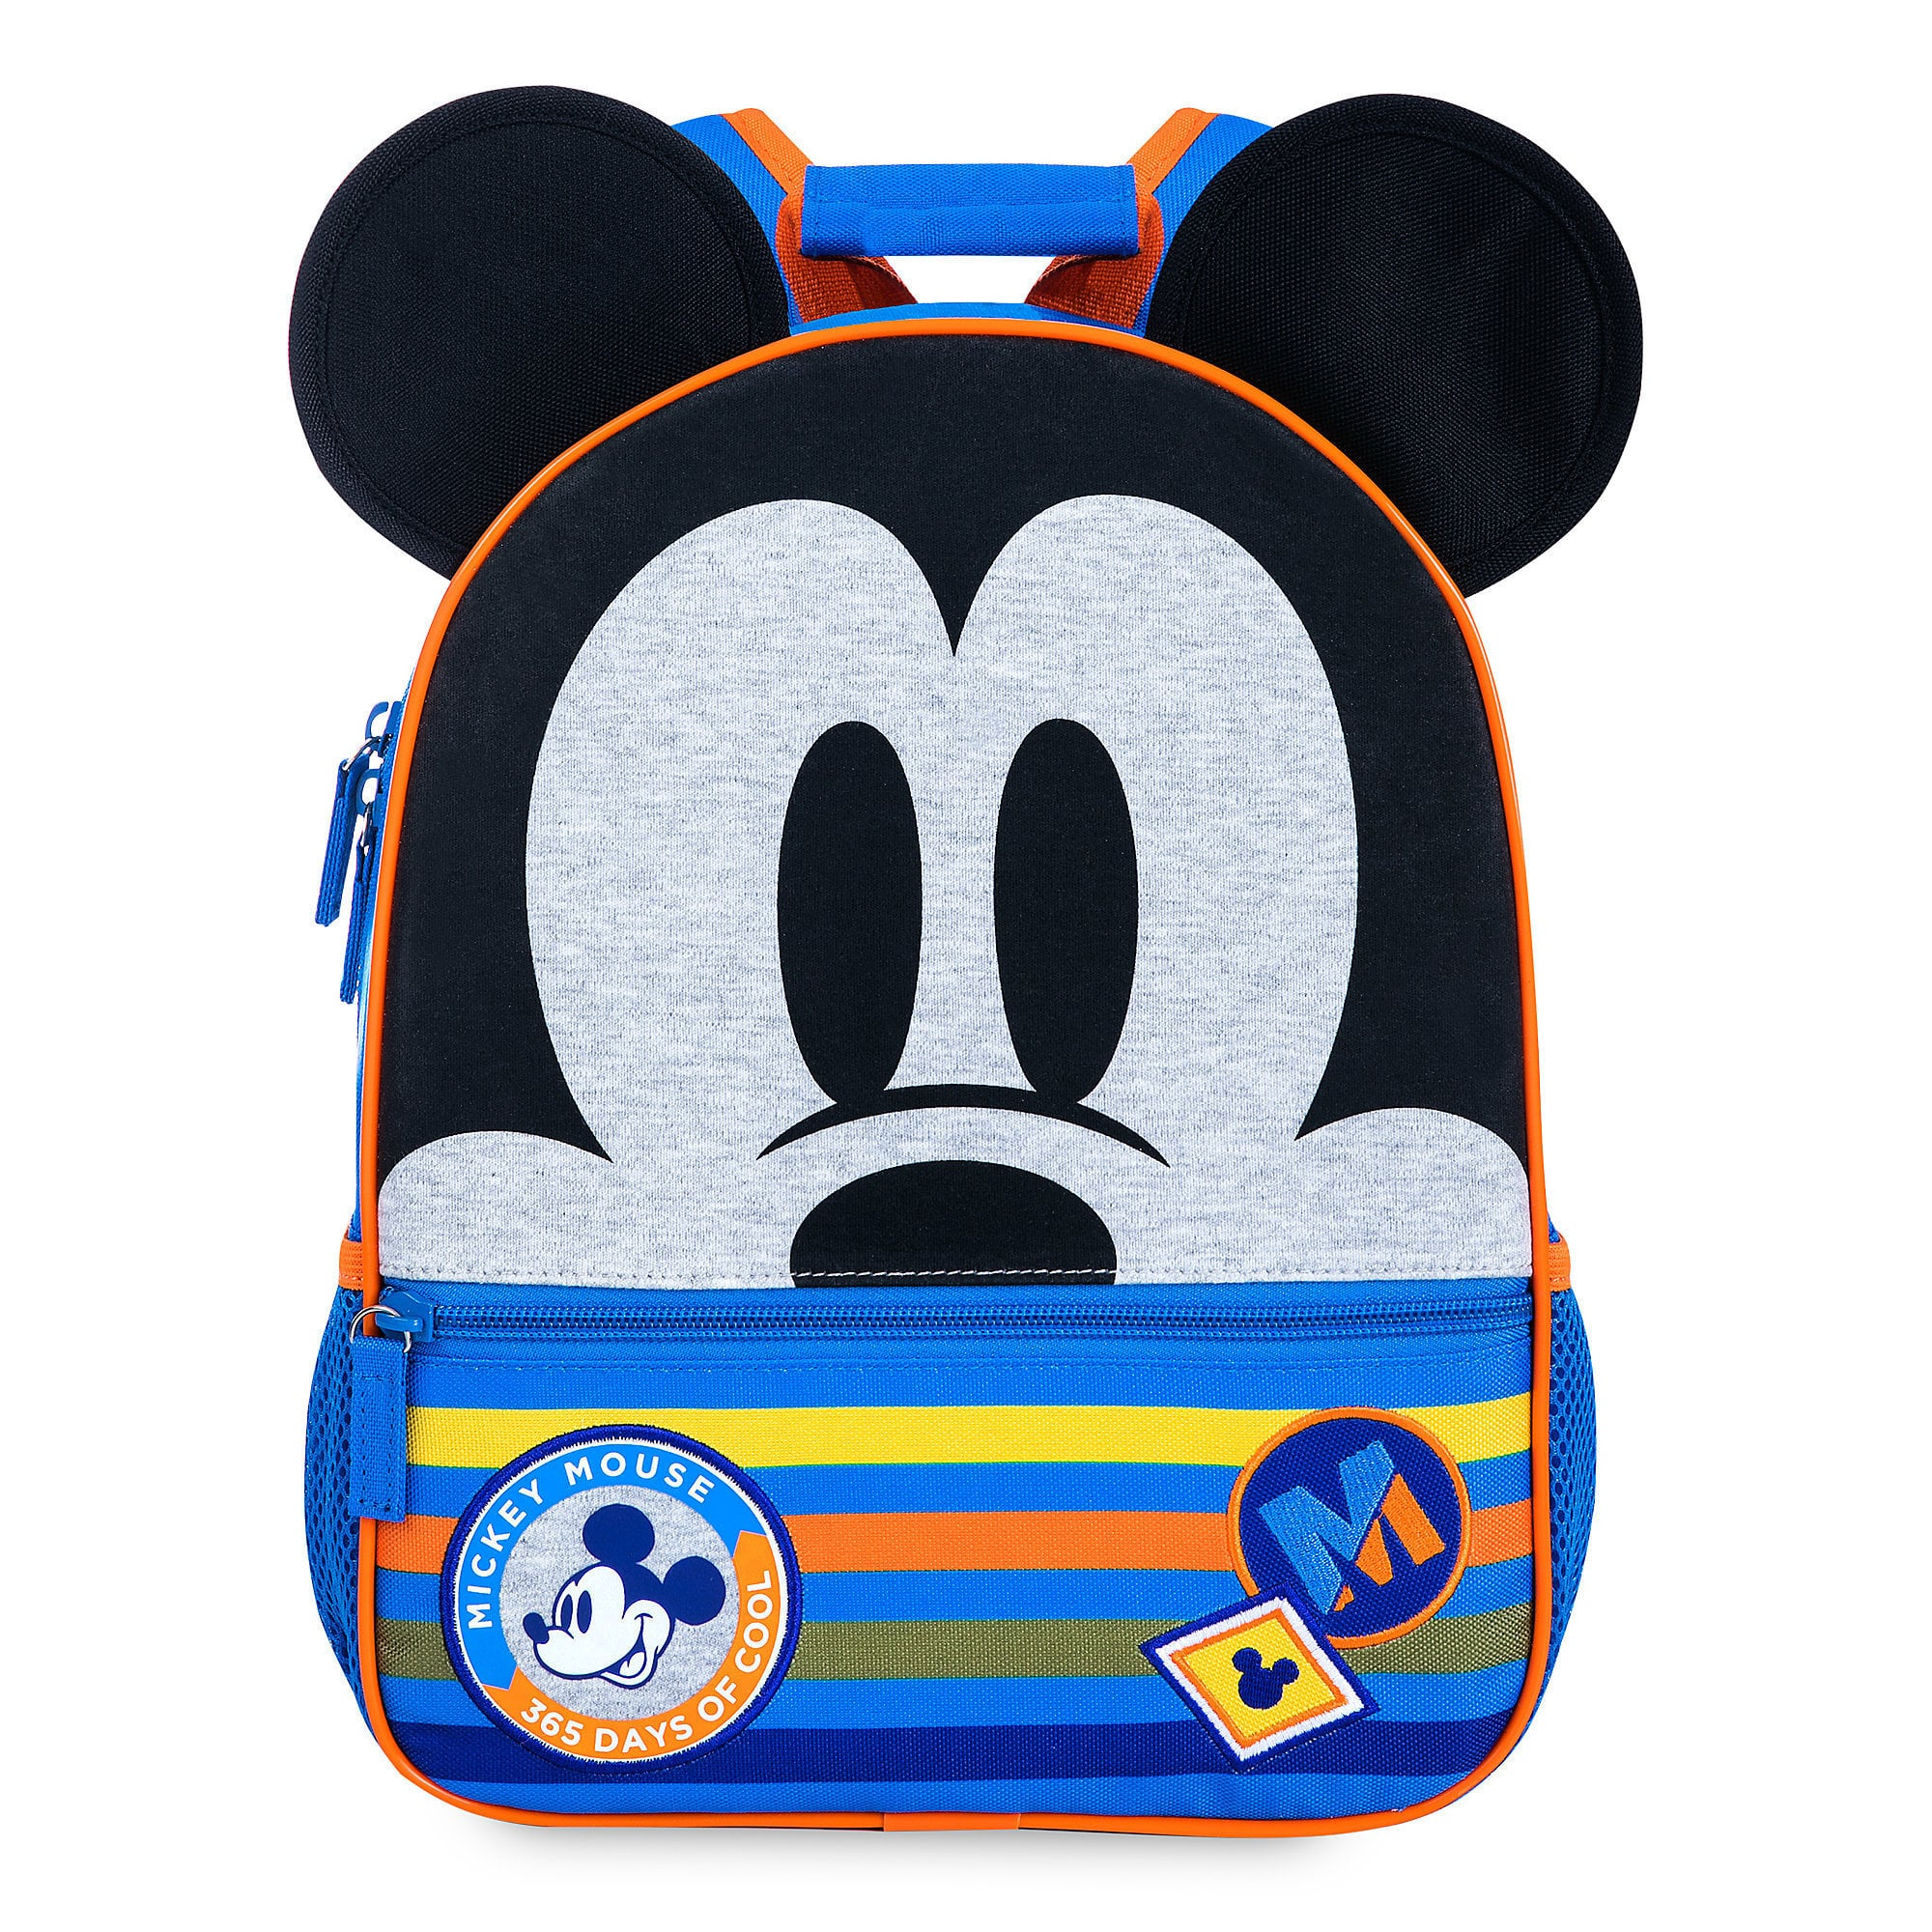 This Mickey Mouse backpack is perfect for preschool | Top 25 Disney Gift Ideas for Toddlers featured by top US Disney blogger, Marcie and the Mouse